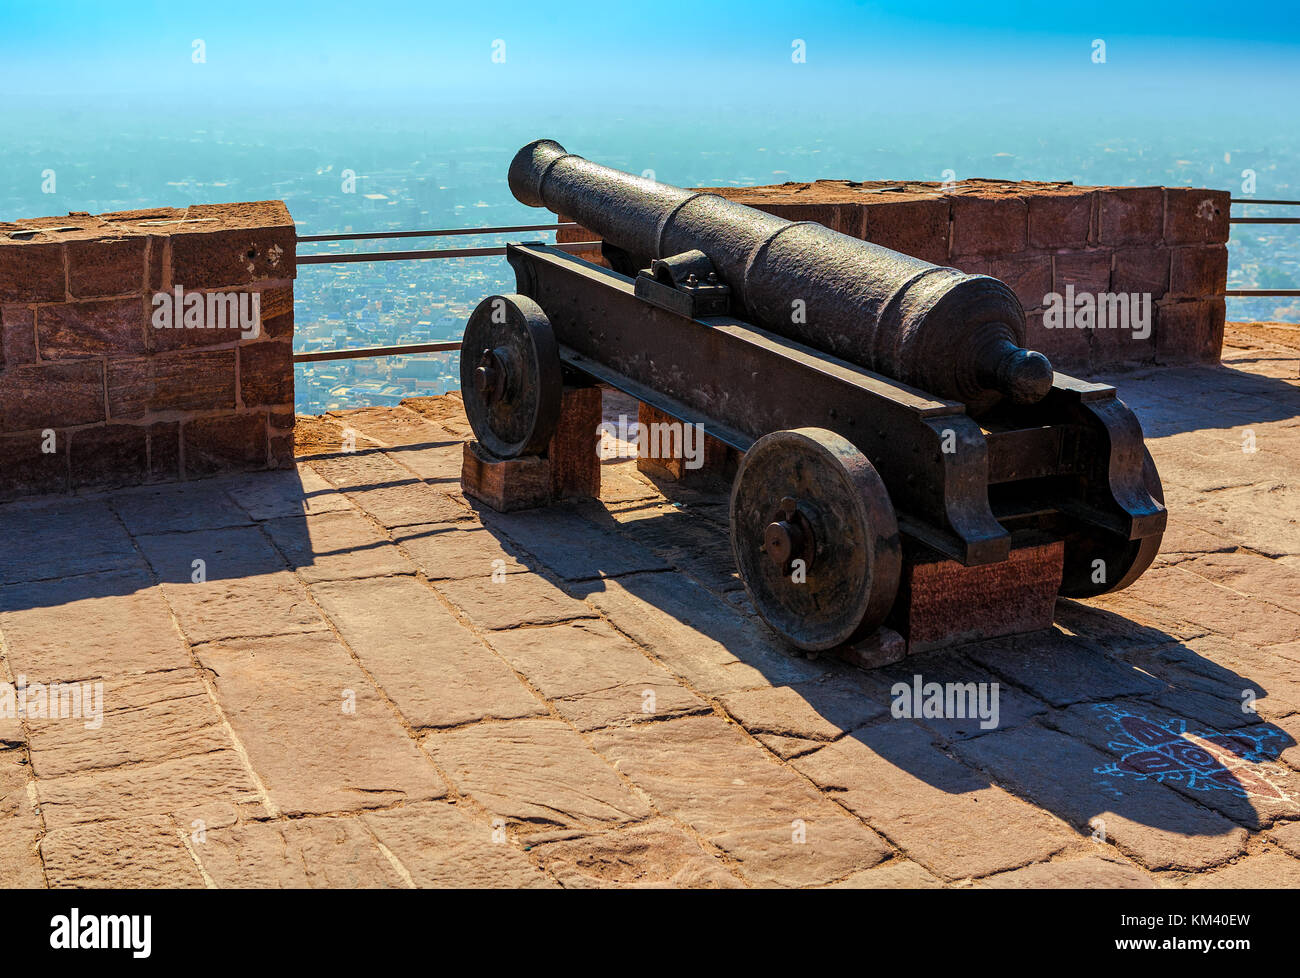 Old historical cannon on the fortress wall of Mehrangarh Fort in Jodhpur, Rajasthan, India, Asia - Stock Image